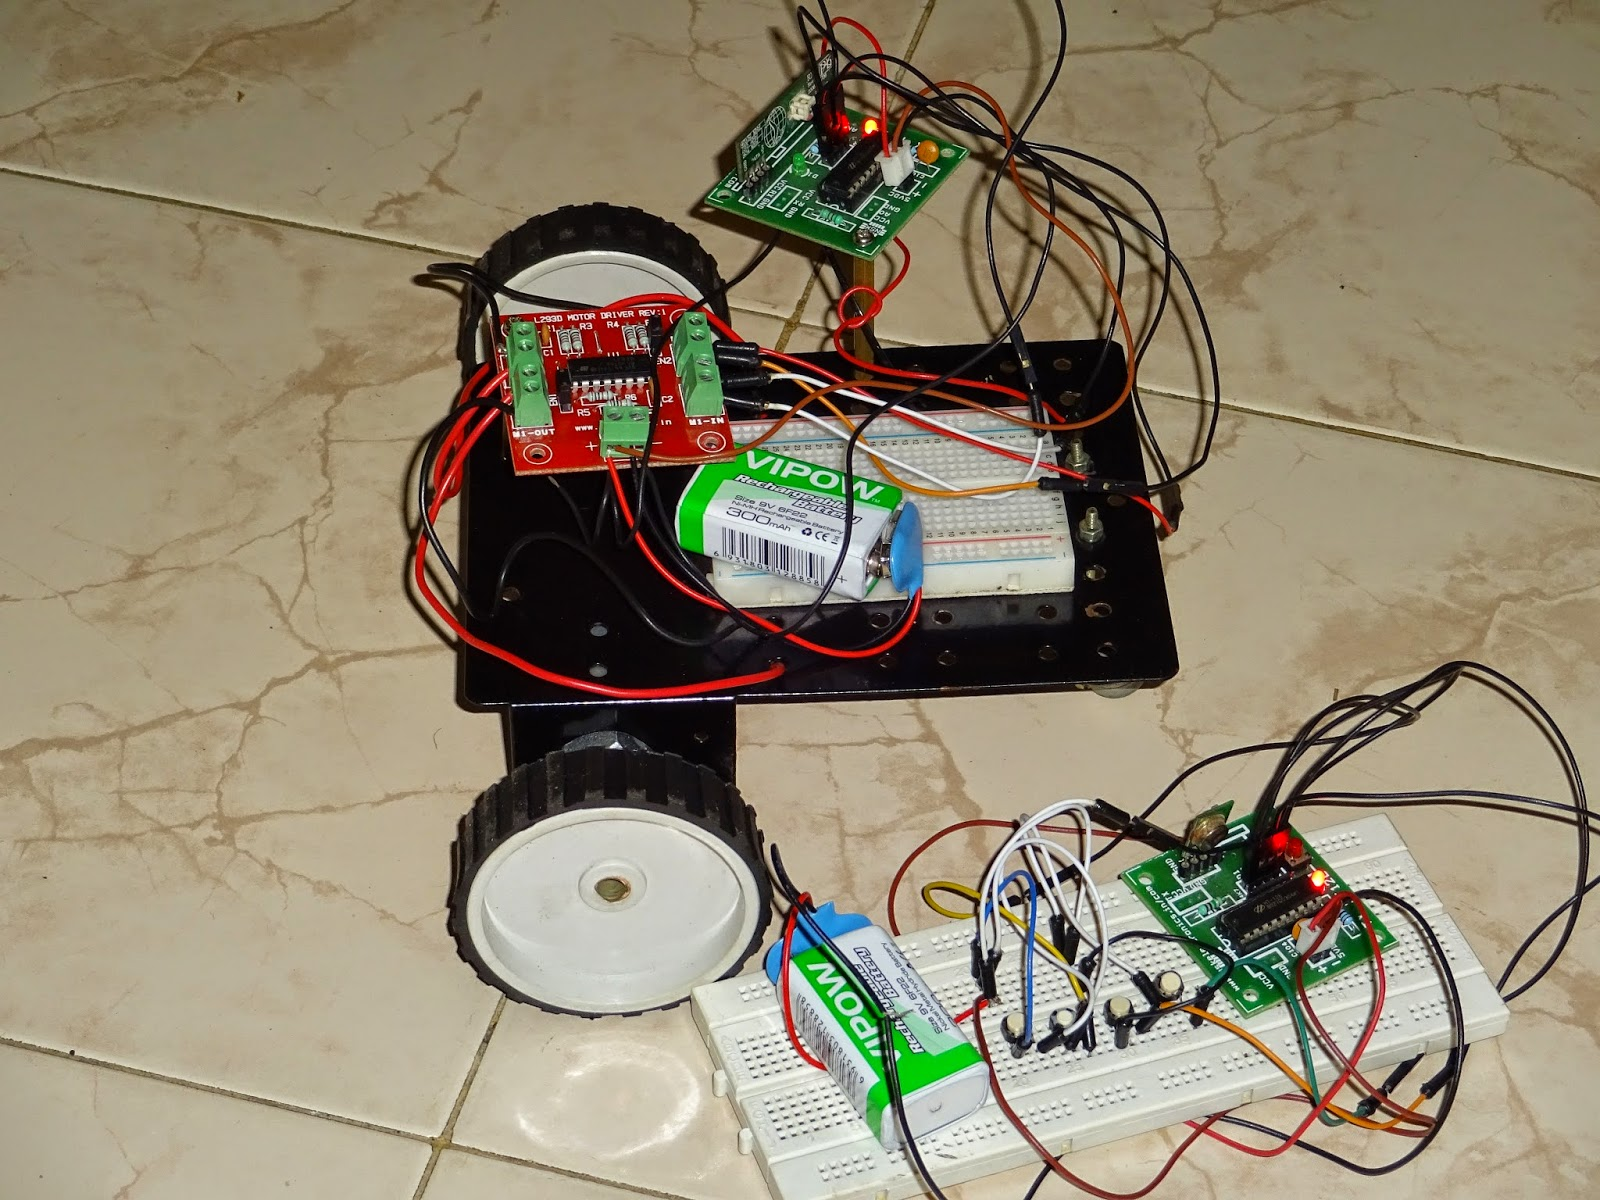 How To Make A Wireless Robot Without Microcontroller Robots Robotics Wiring Diagram Check This Page For Circuit Its Simply Plug And Play Type Bot No Need The If You Still Want